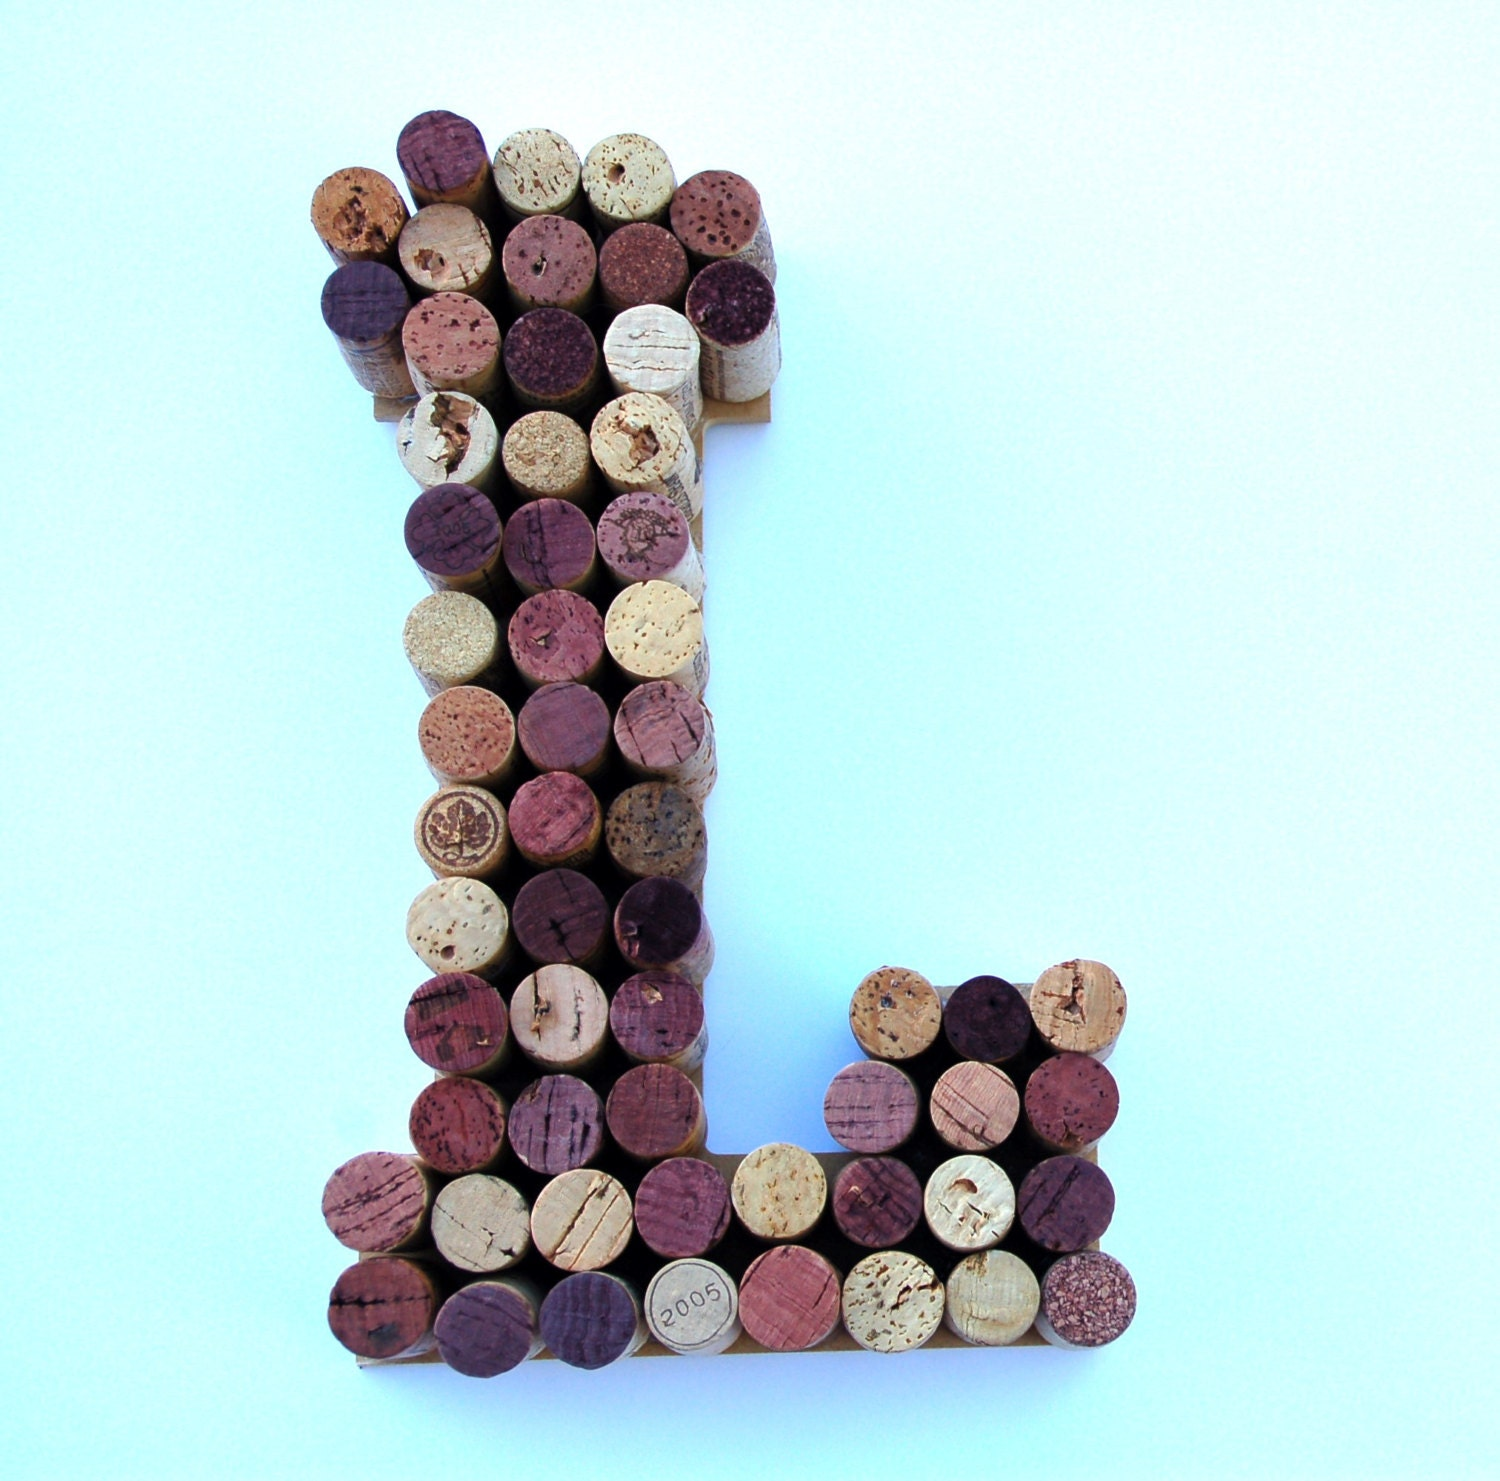 zoom Wine Cork Letter L made from